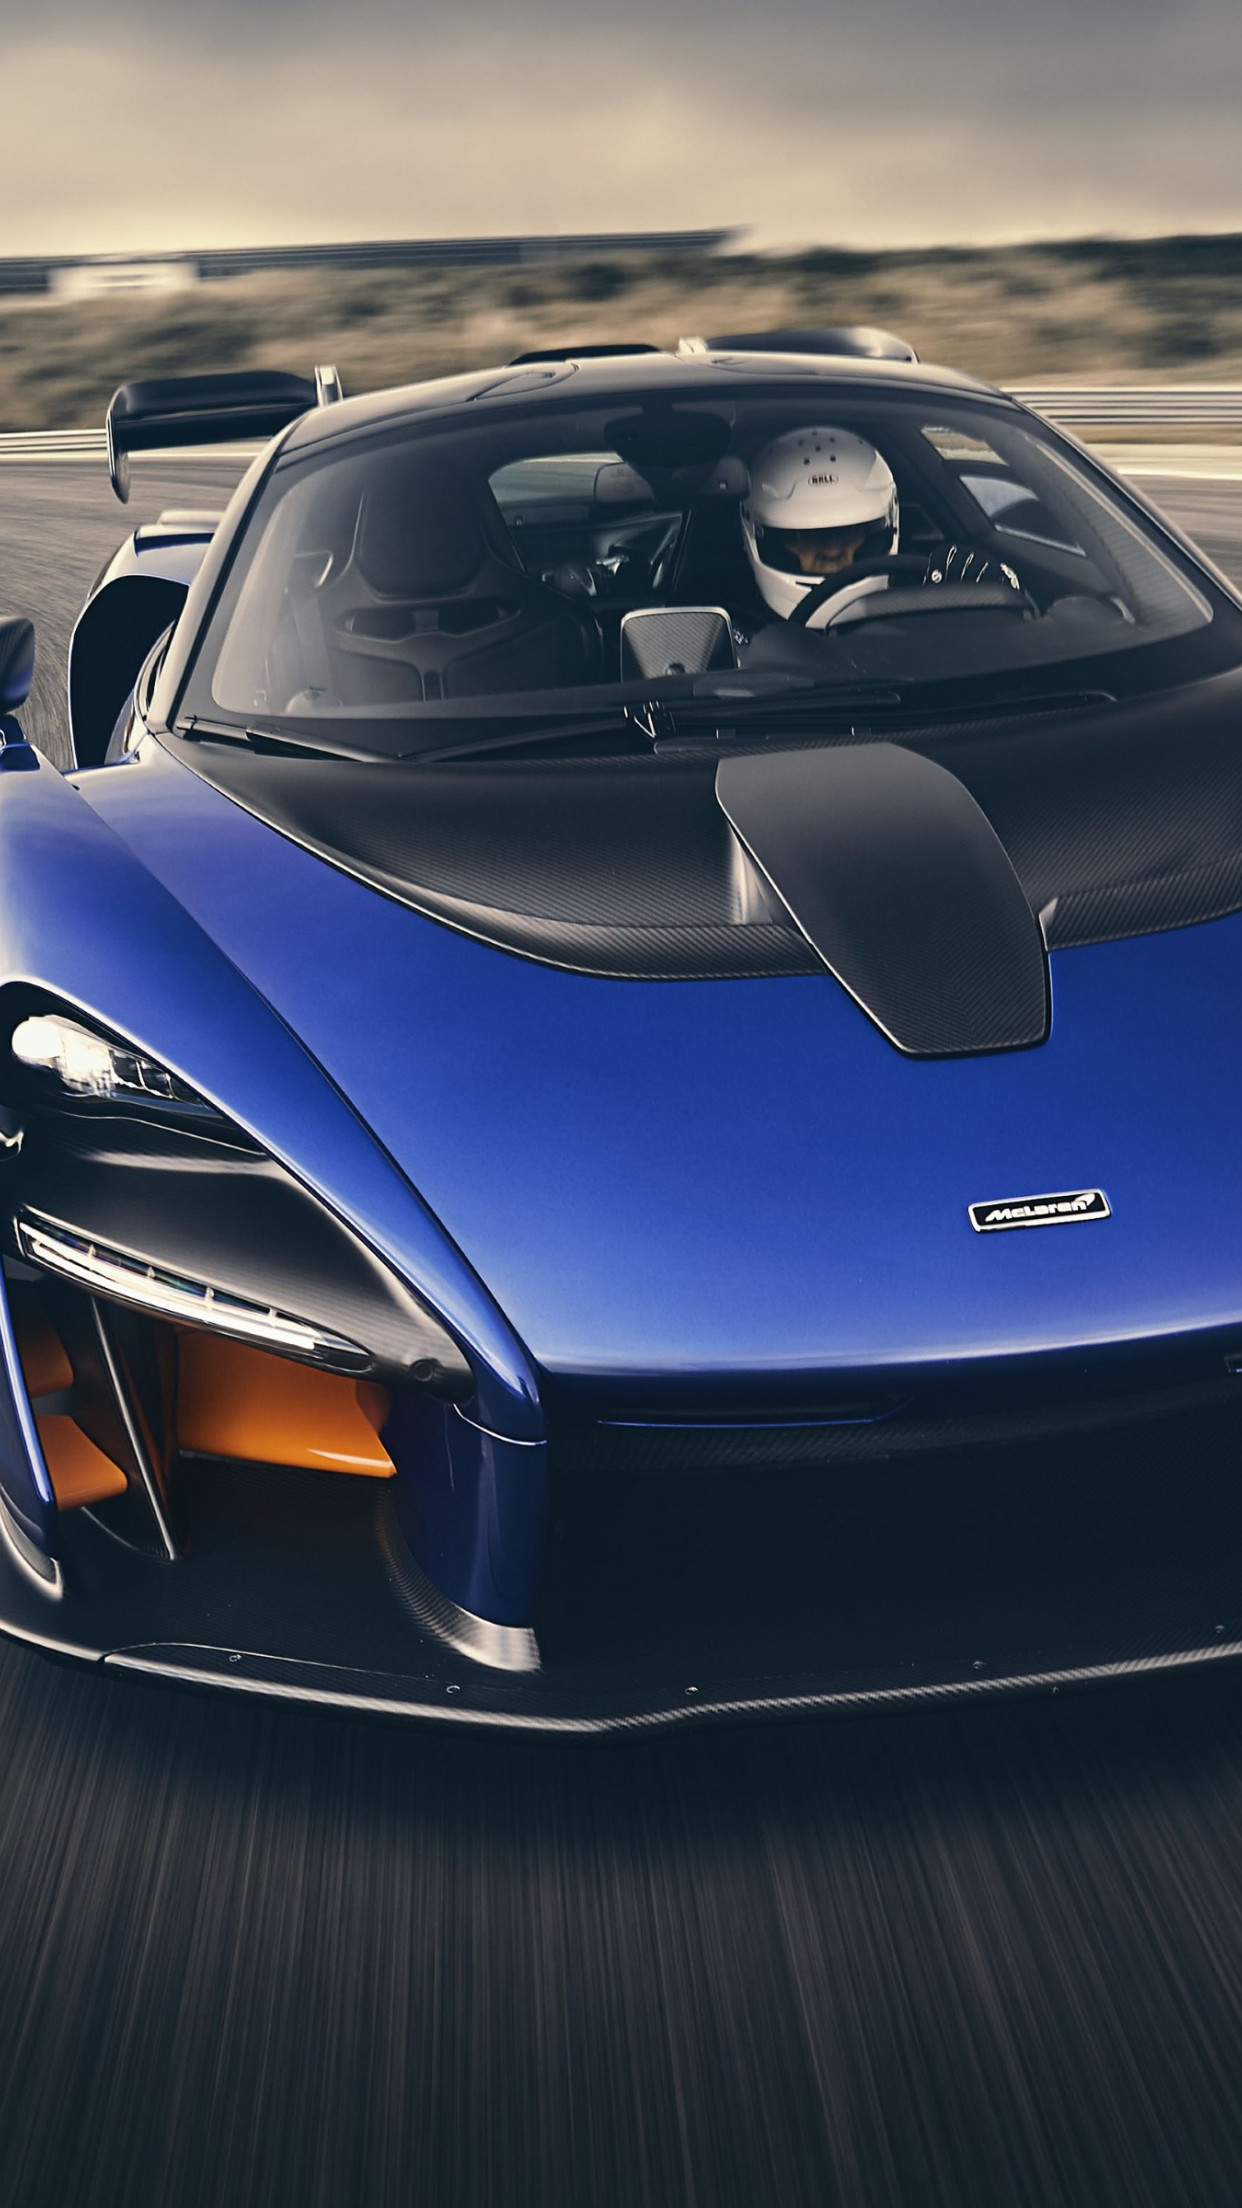 mclaren senna wallpaper 1242x2208 96748 mm 90